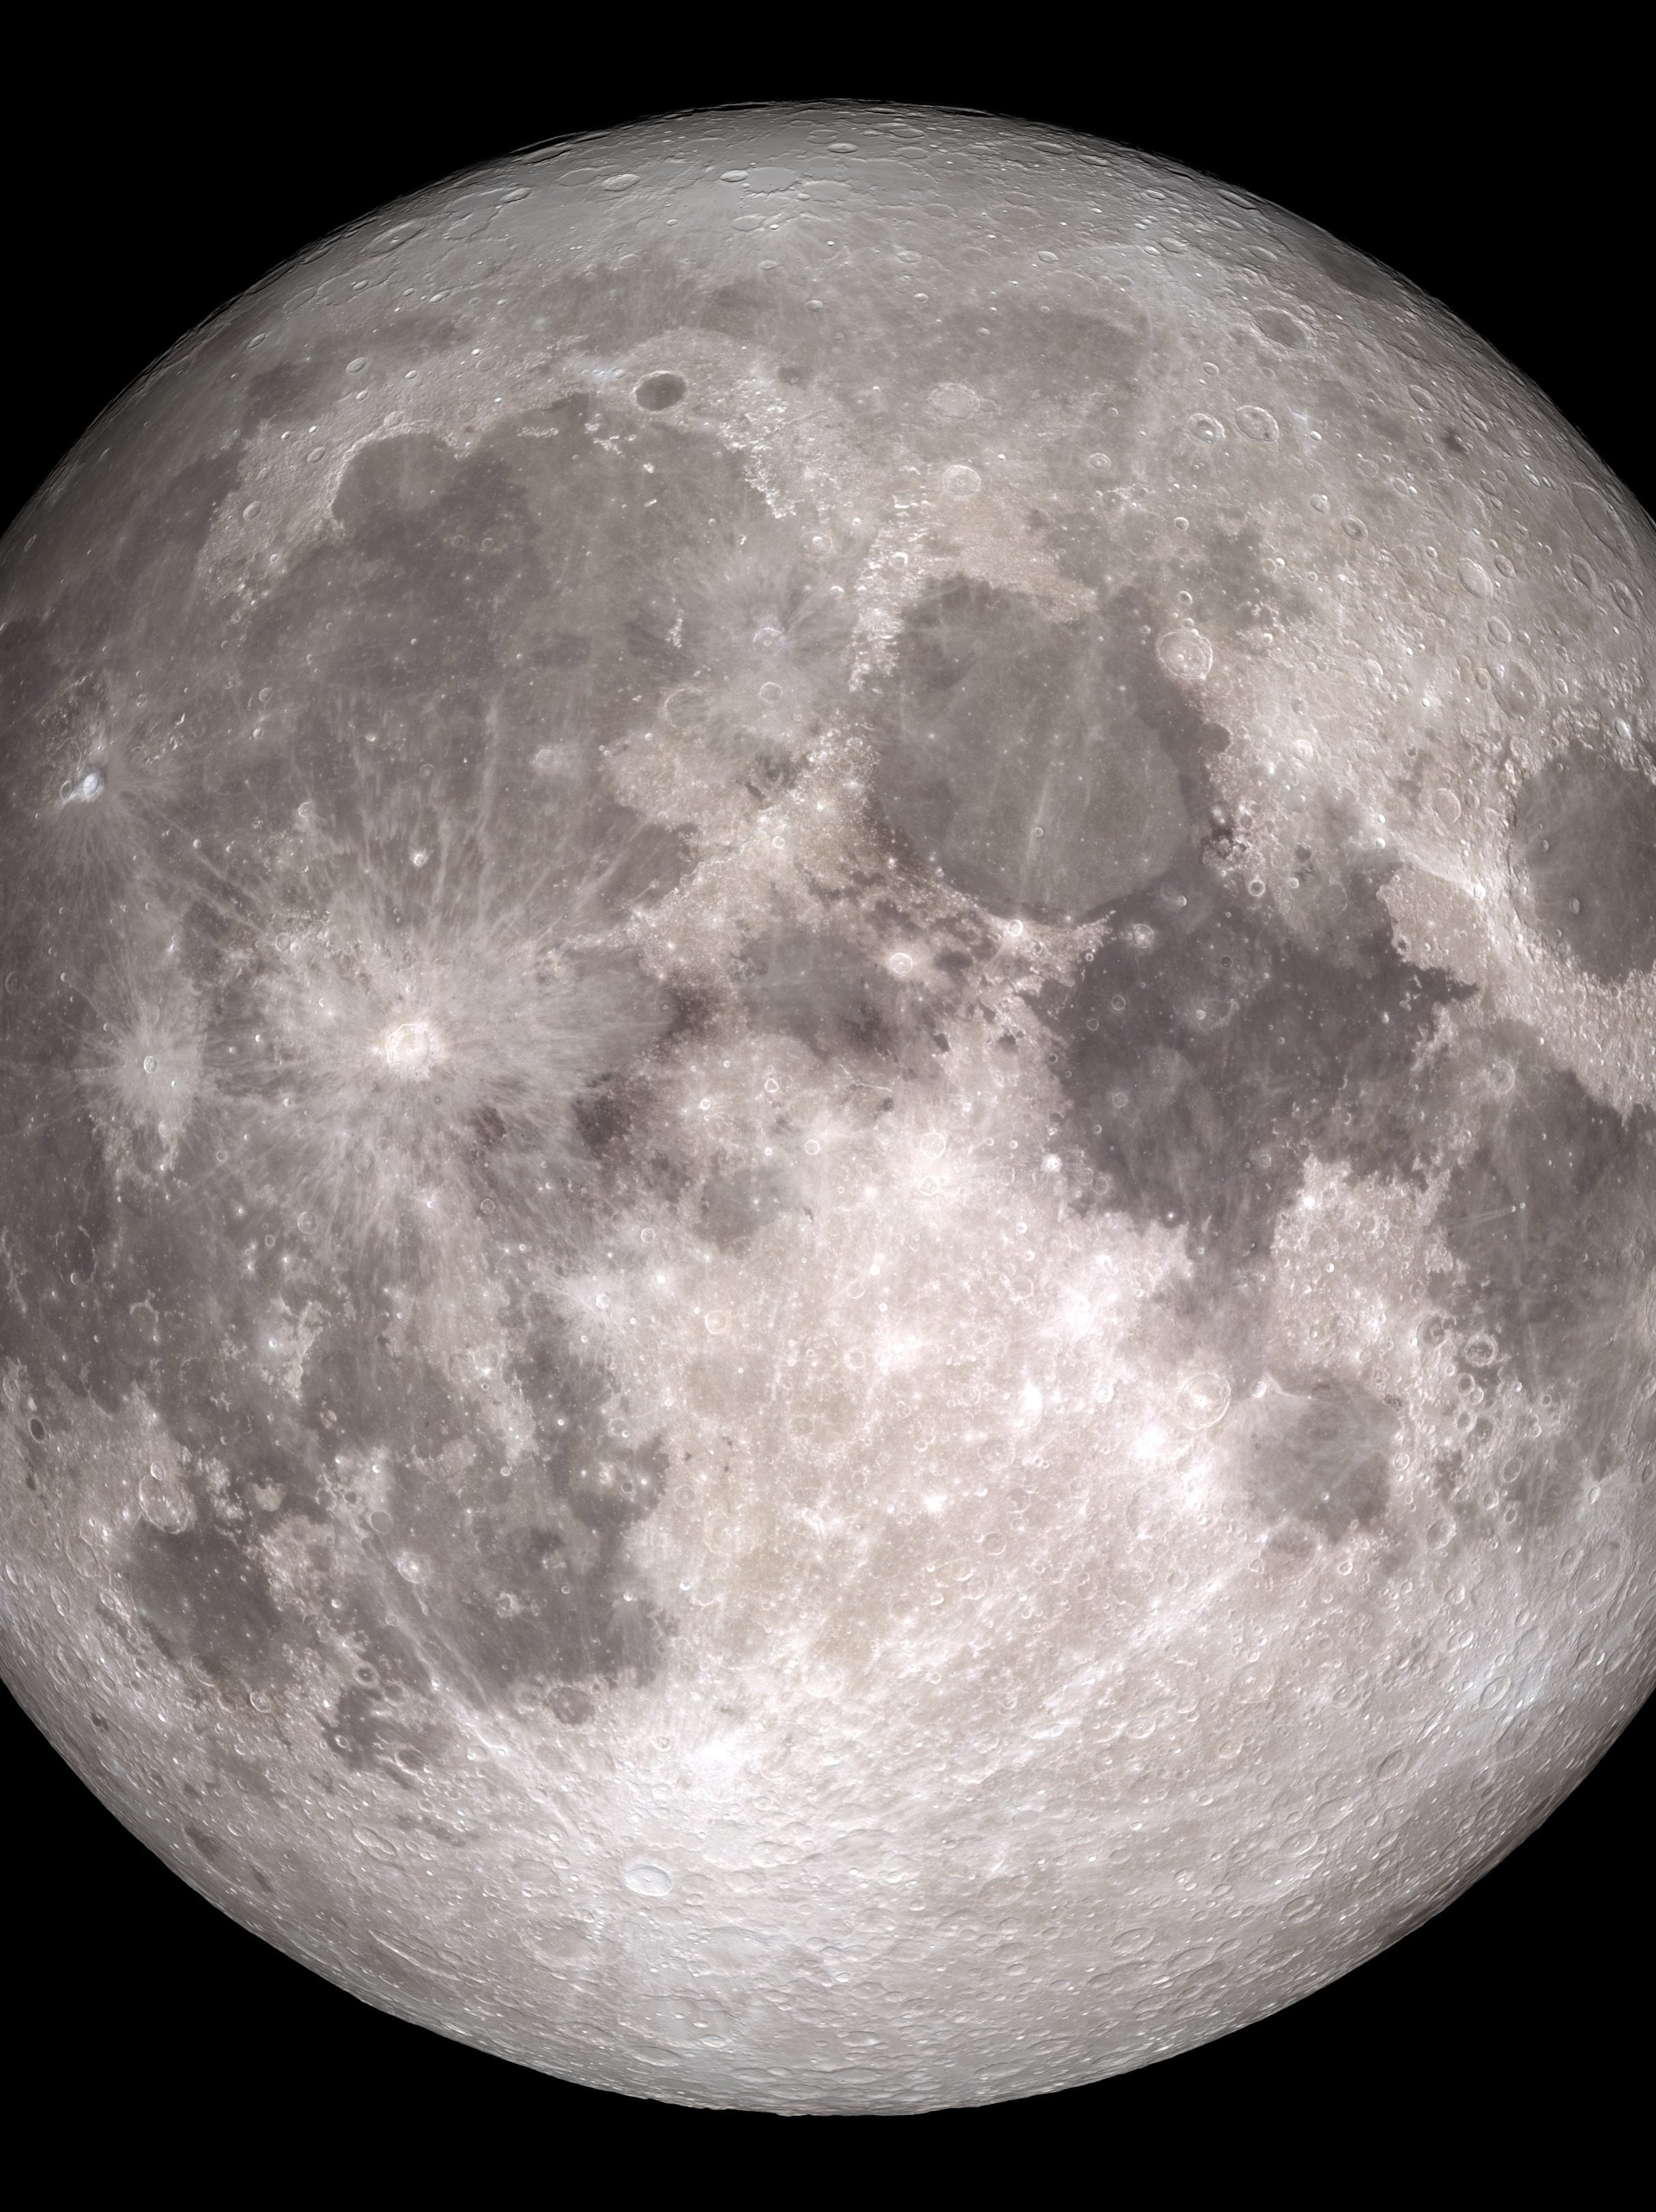 View of a rare full moon on Christmas day in 2015. This won't happen again until 2034.